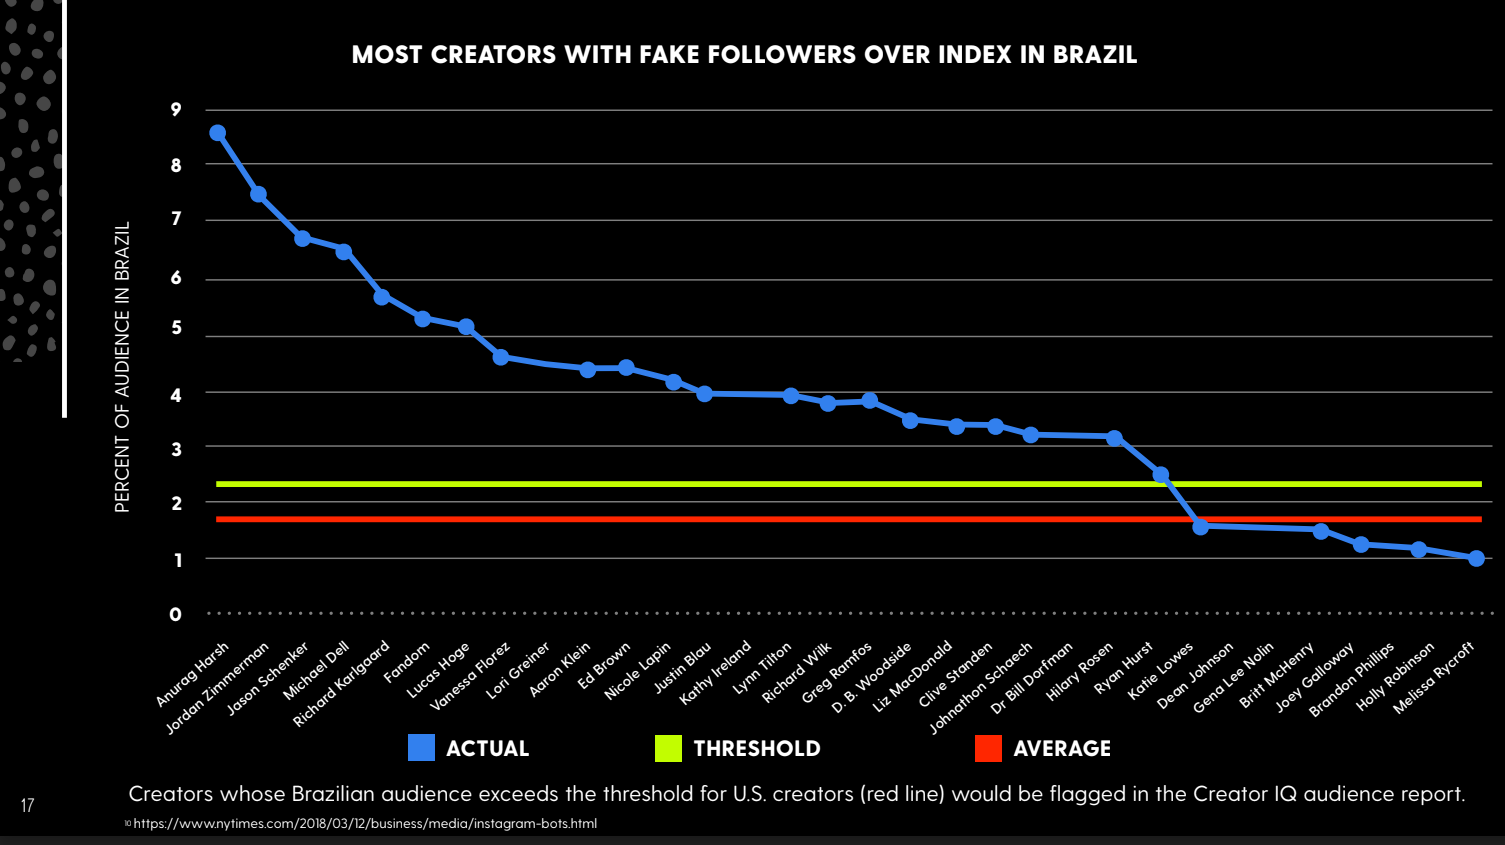 Most creators with fake followers over index in Brazil